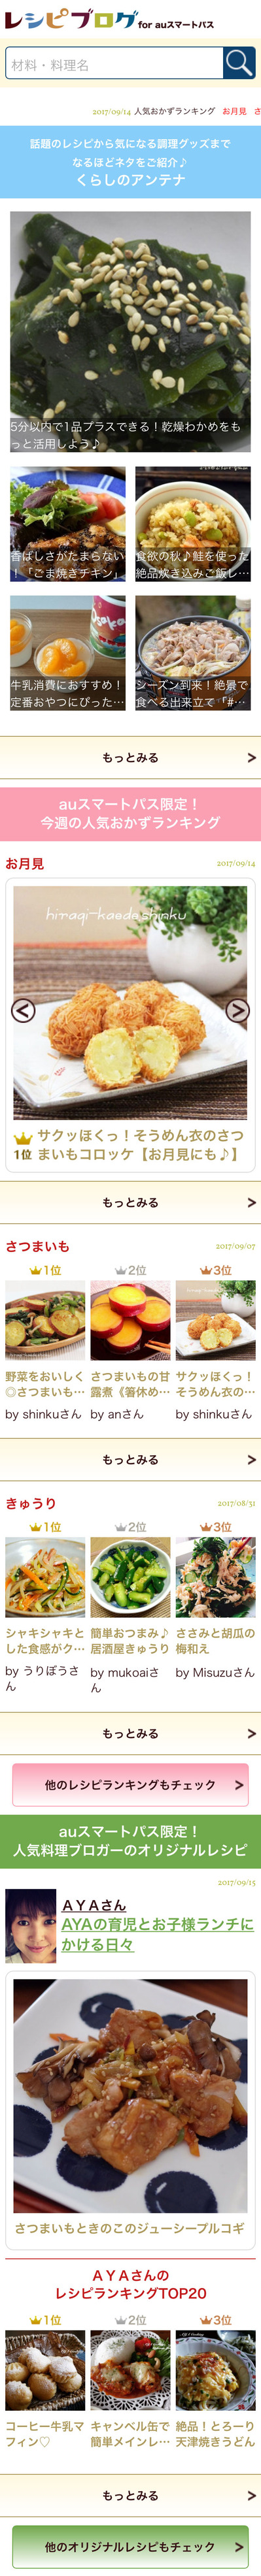 recipeblog20170915.jpg